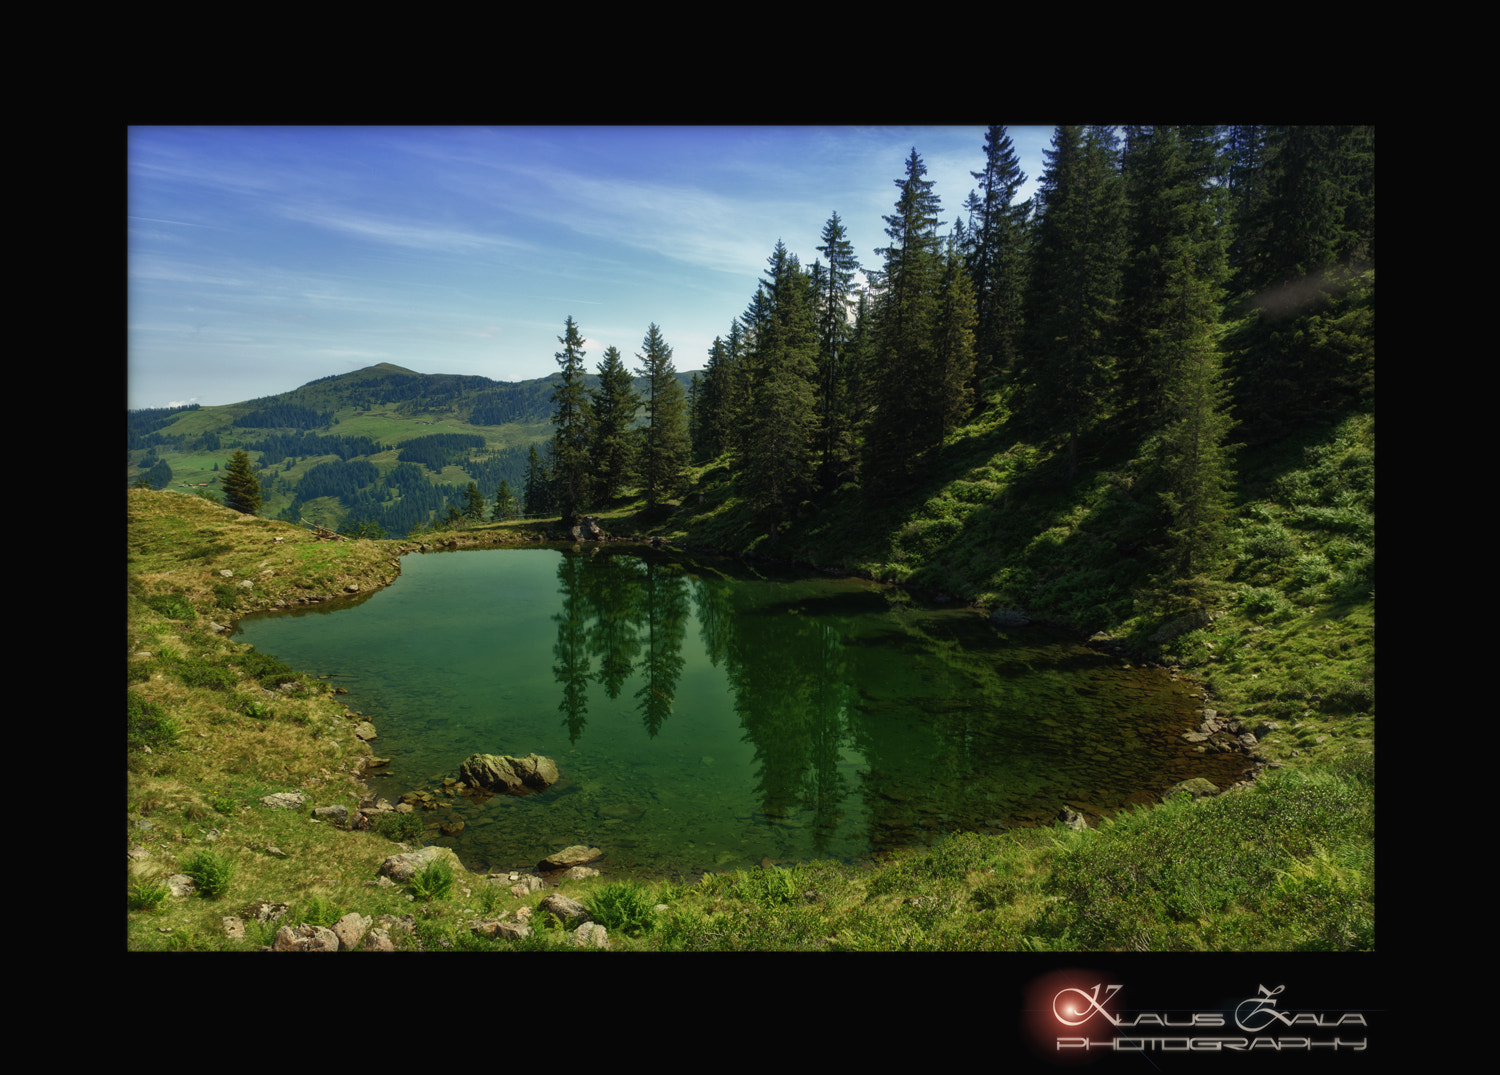 Photograph ... emerald pond ... by klausZ - Photography on 500px